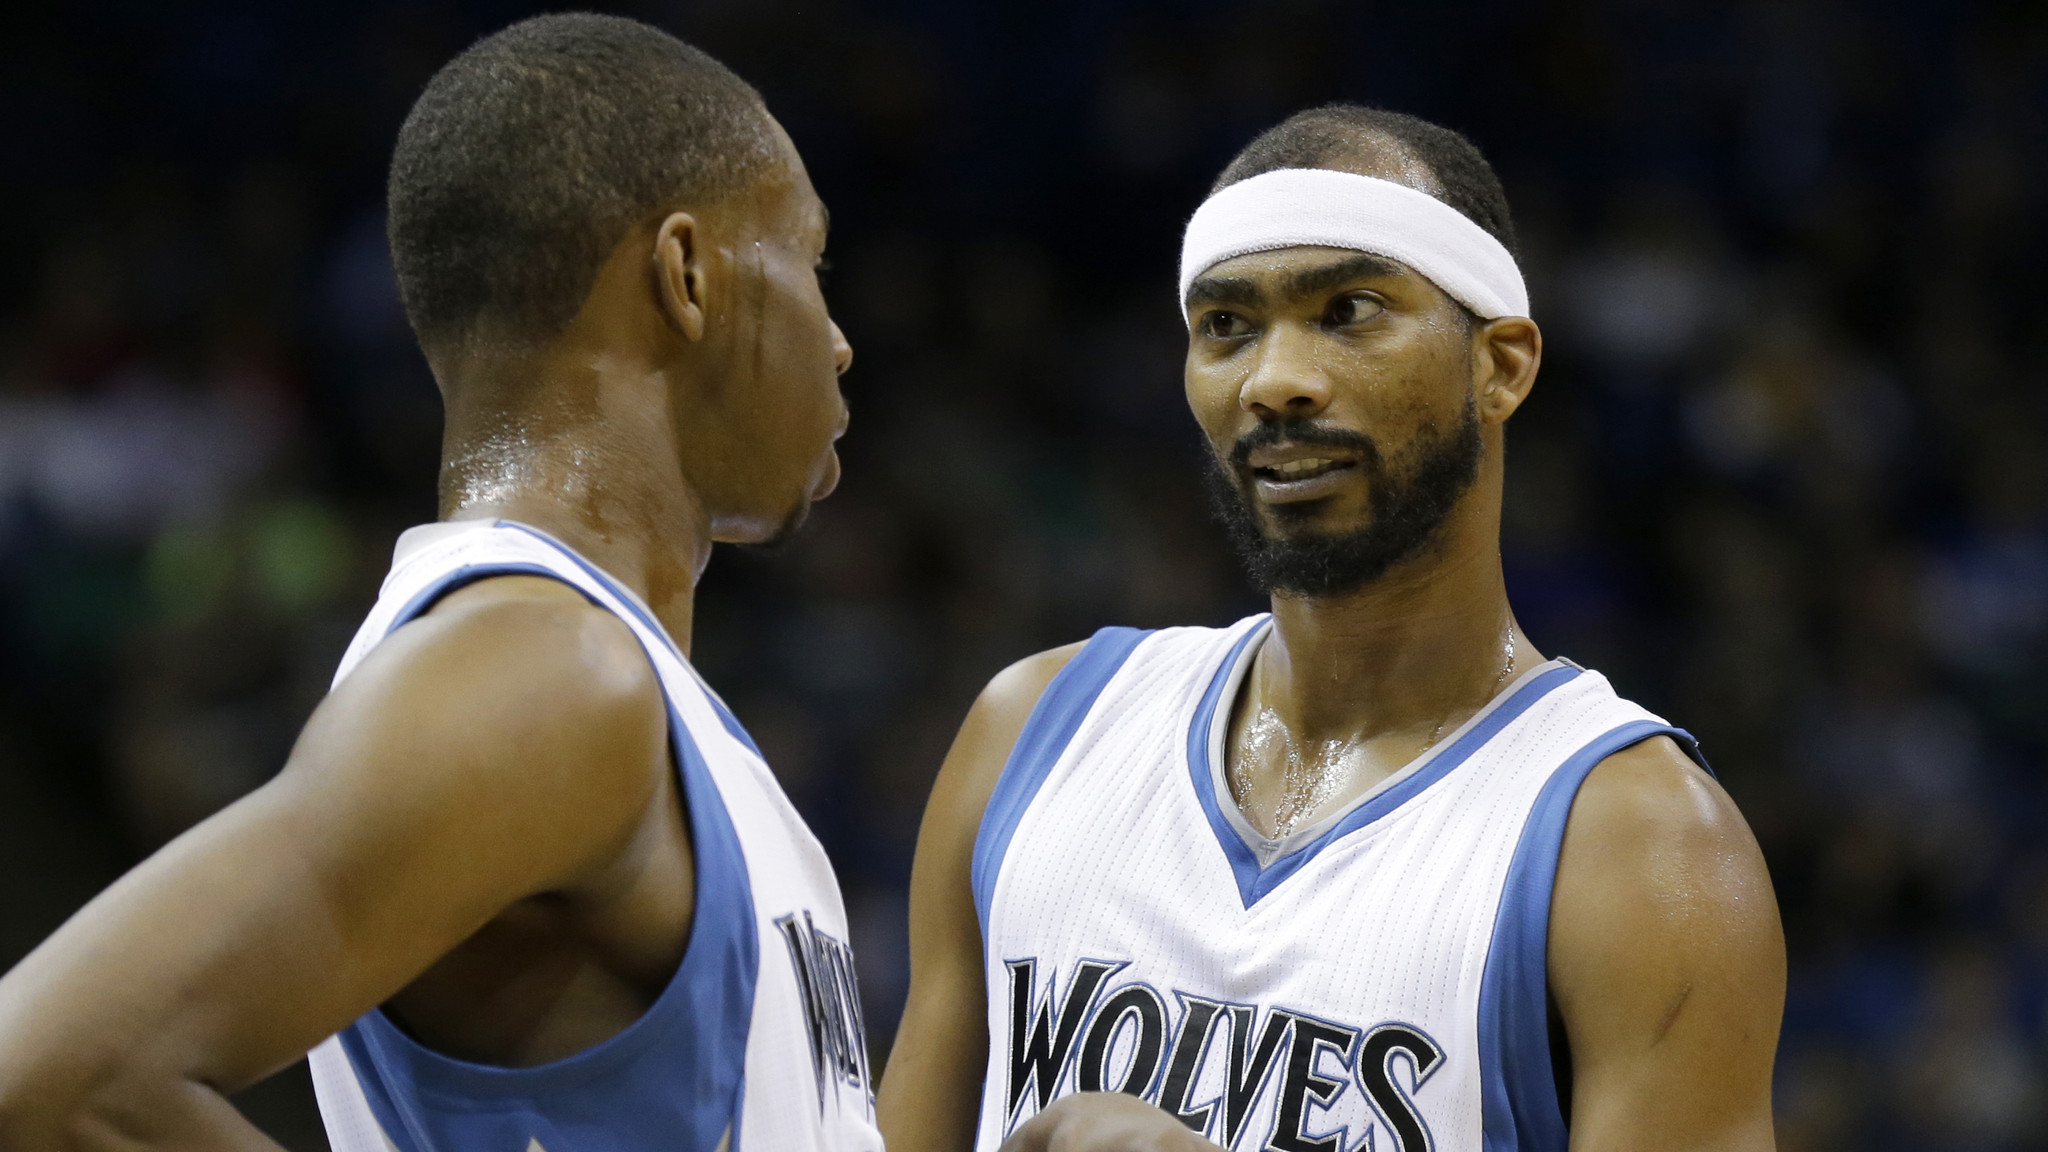 Get the latest Minnesota Timberwolves news scores stats standings rumors and more from ESPN